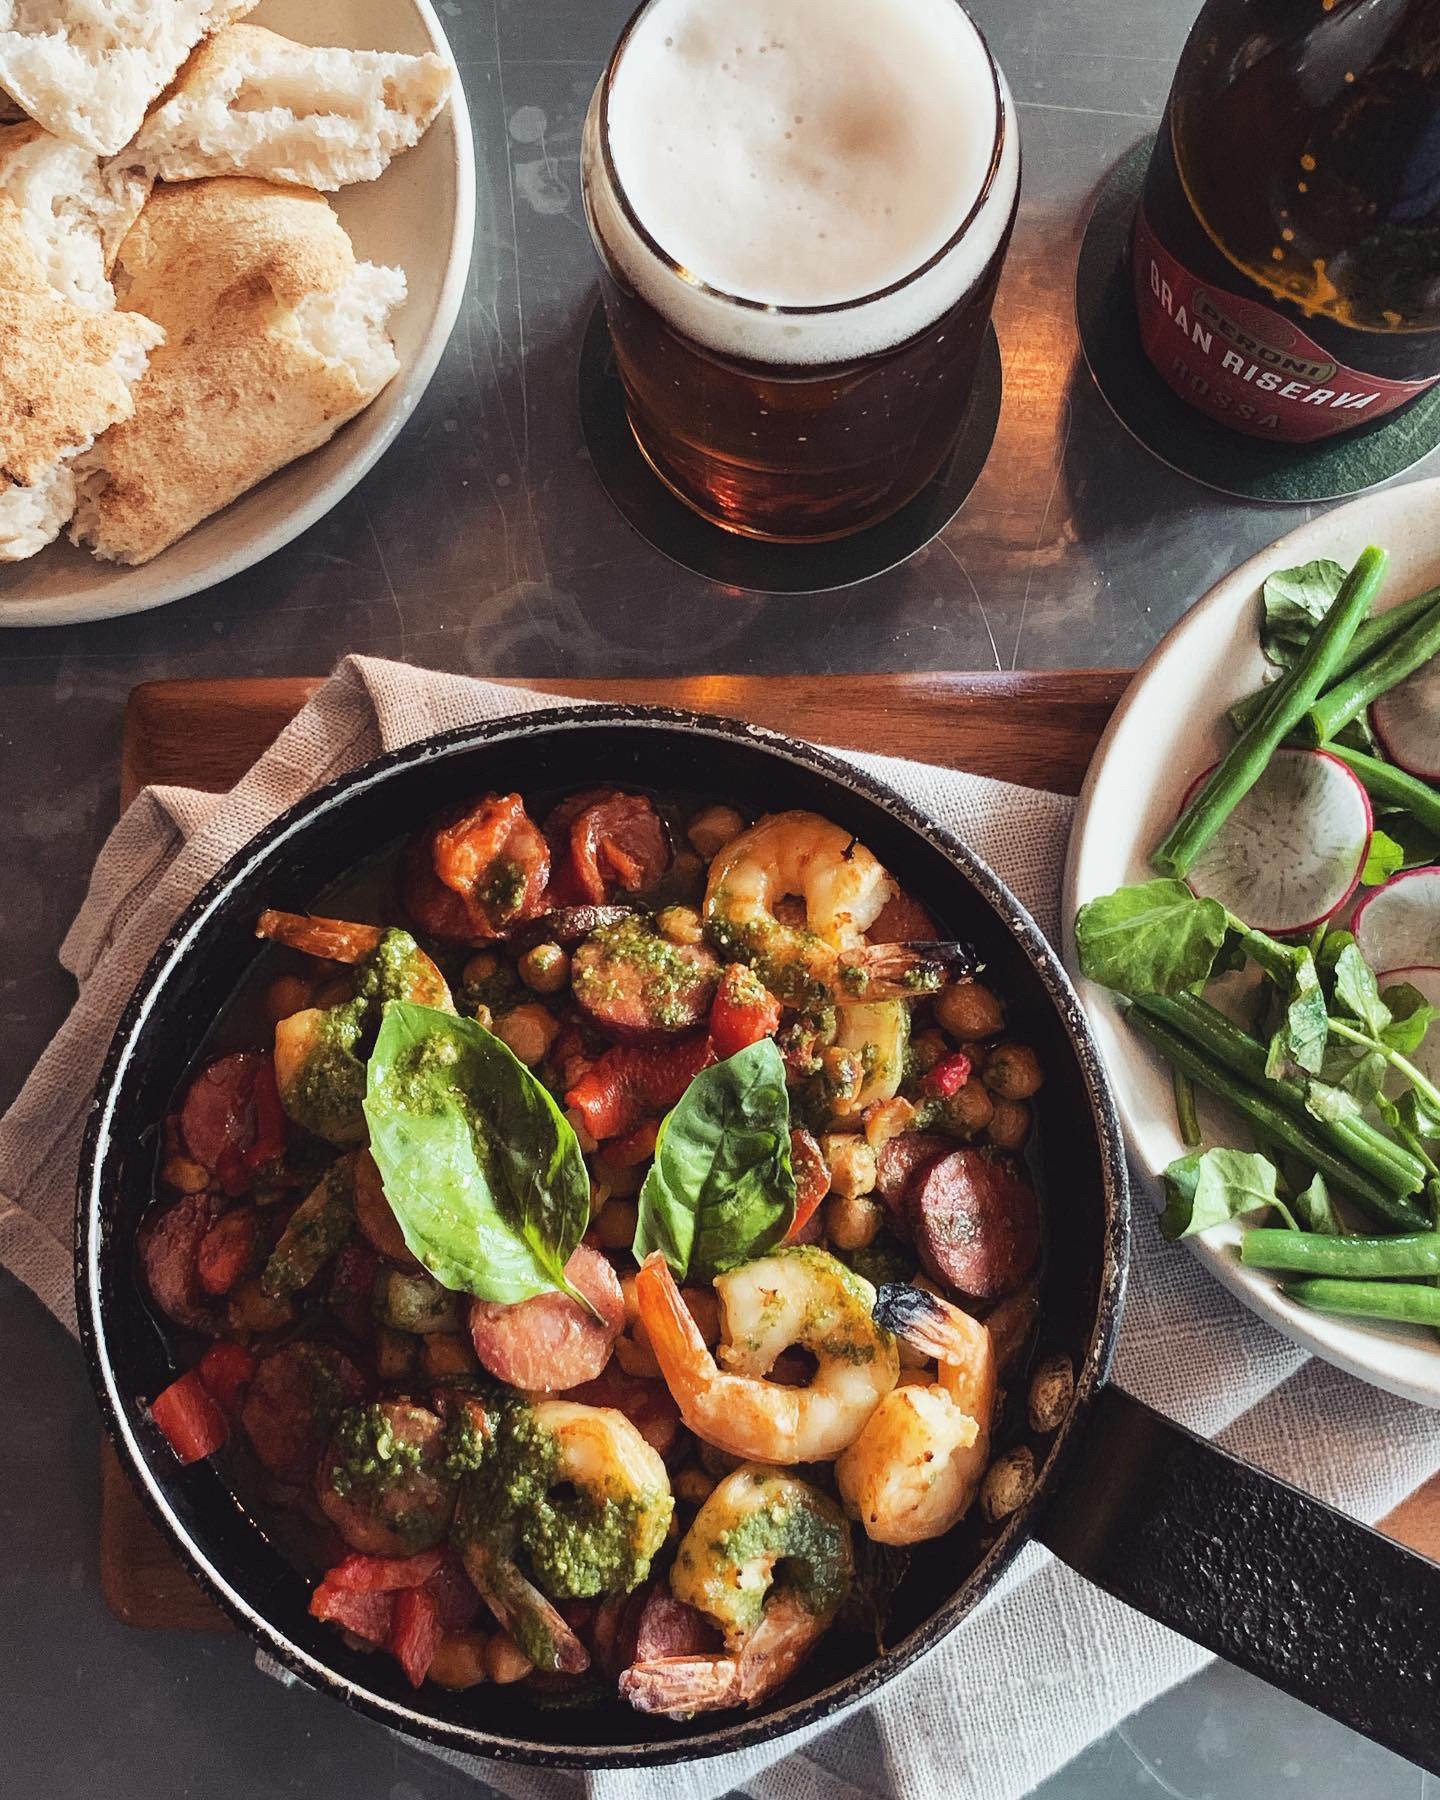 28 August - 3 September - ~ S T U F A T O ~This week we have the perfect dish for those of you who crave a wholesome, comforting end-of-winter feed.// Slow cooked stew of QLD tiger prawns, smoked Spanish chorizo, piquillo peppers, chickpeas, herbs and generous cold pressed extra virgin olive oil, served with a salad of picked radish, green beans and watercress. //.To wash it down, we recommend our Peroni Gran Riserva Rossa, a bold lager with darker colour and a flavour that can keep the potent flavours of our stew I check 🍺 👌🏻 .